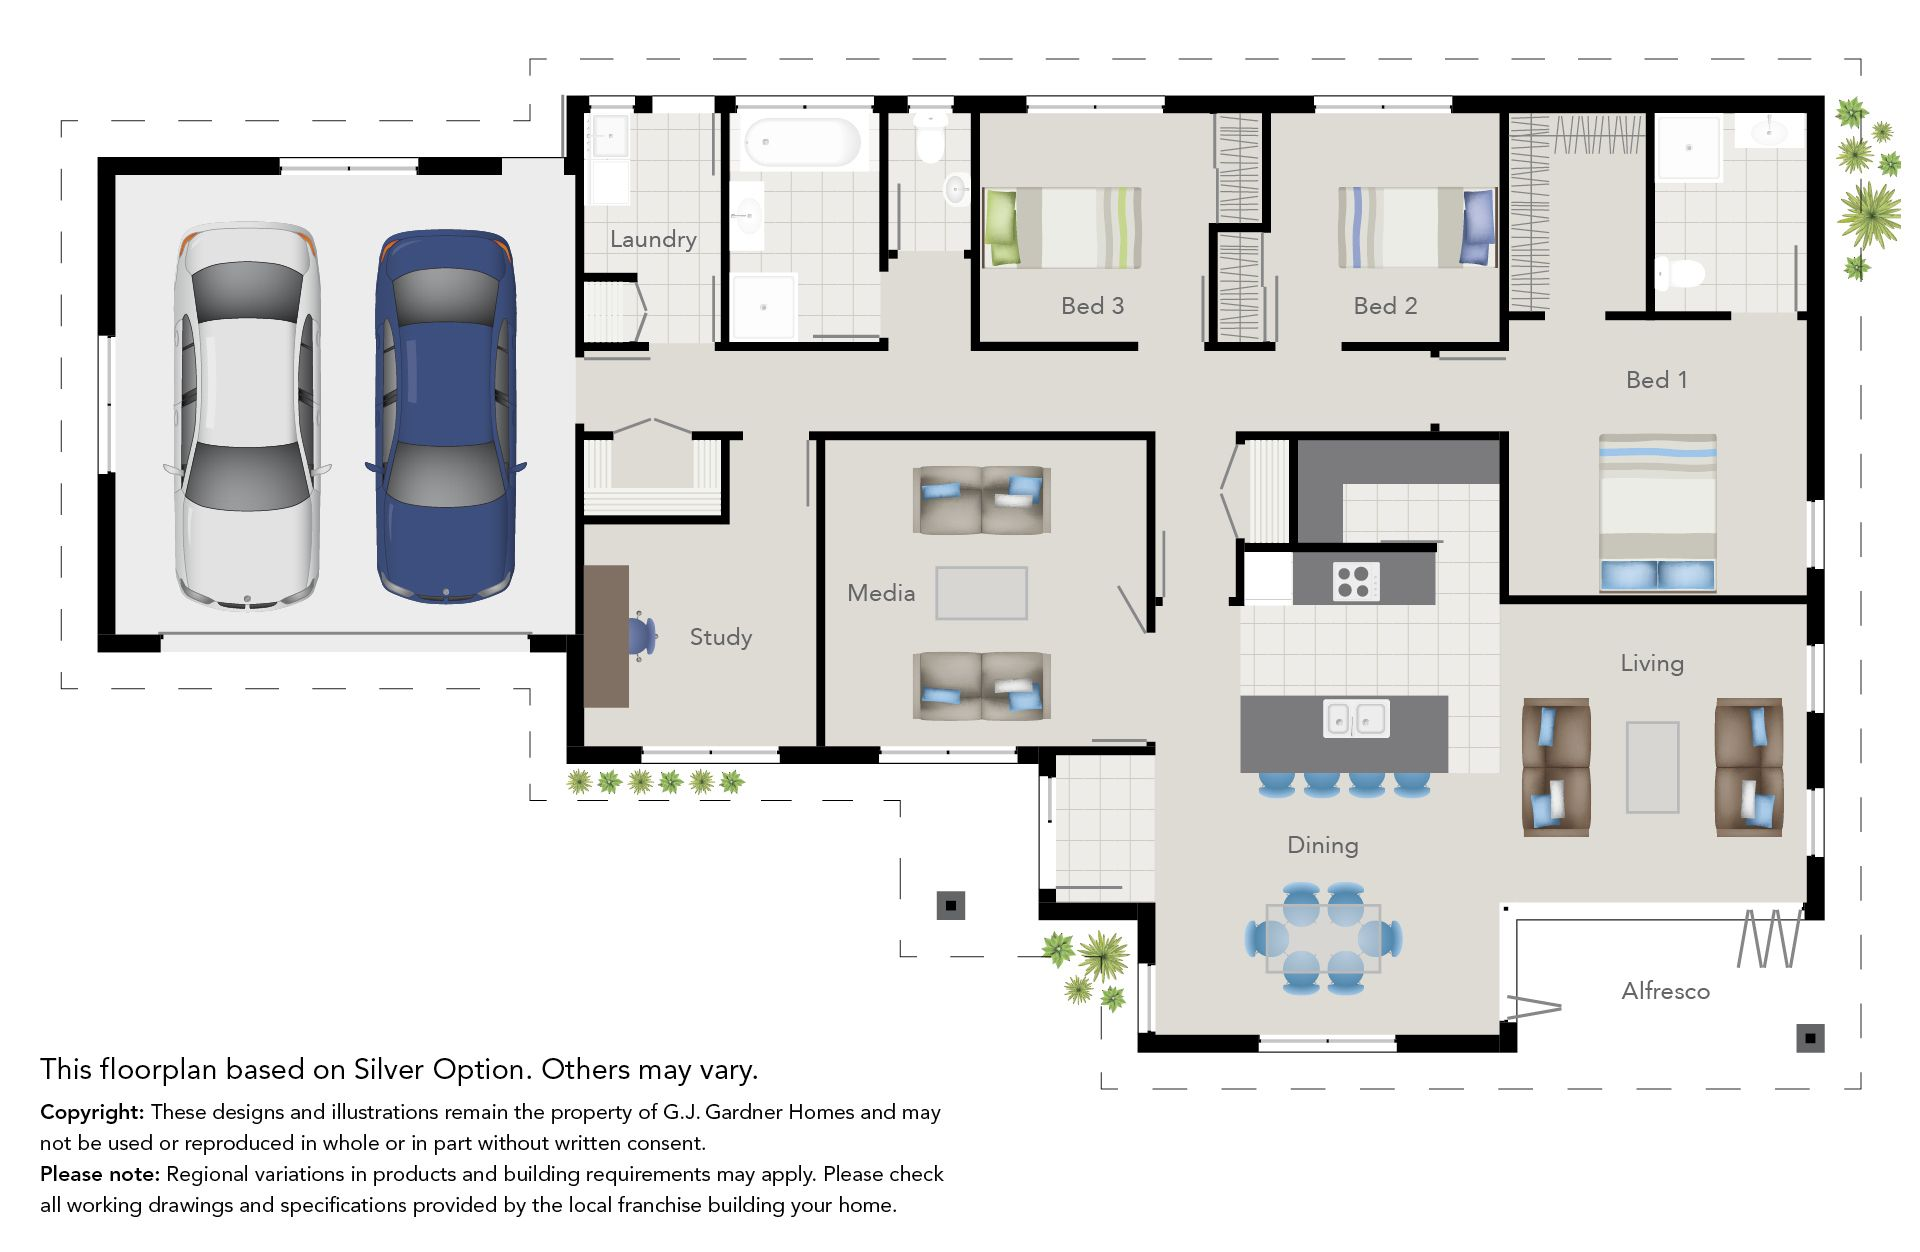 House Design Christie House Plans House Floor Plans House Blueprints